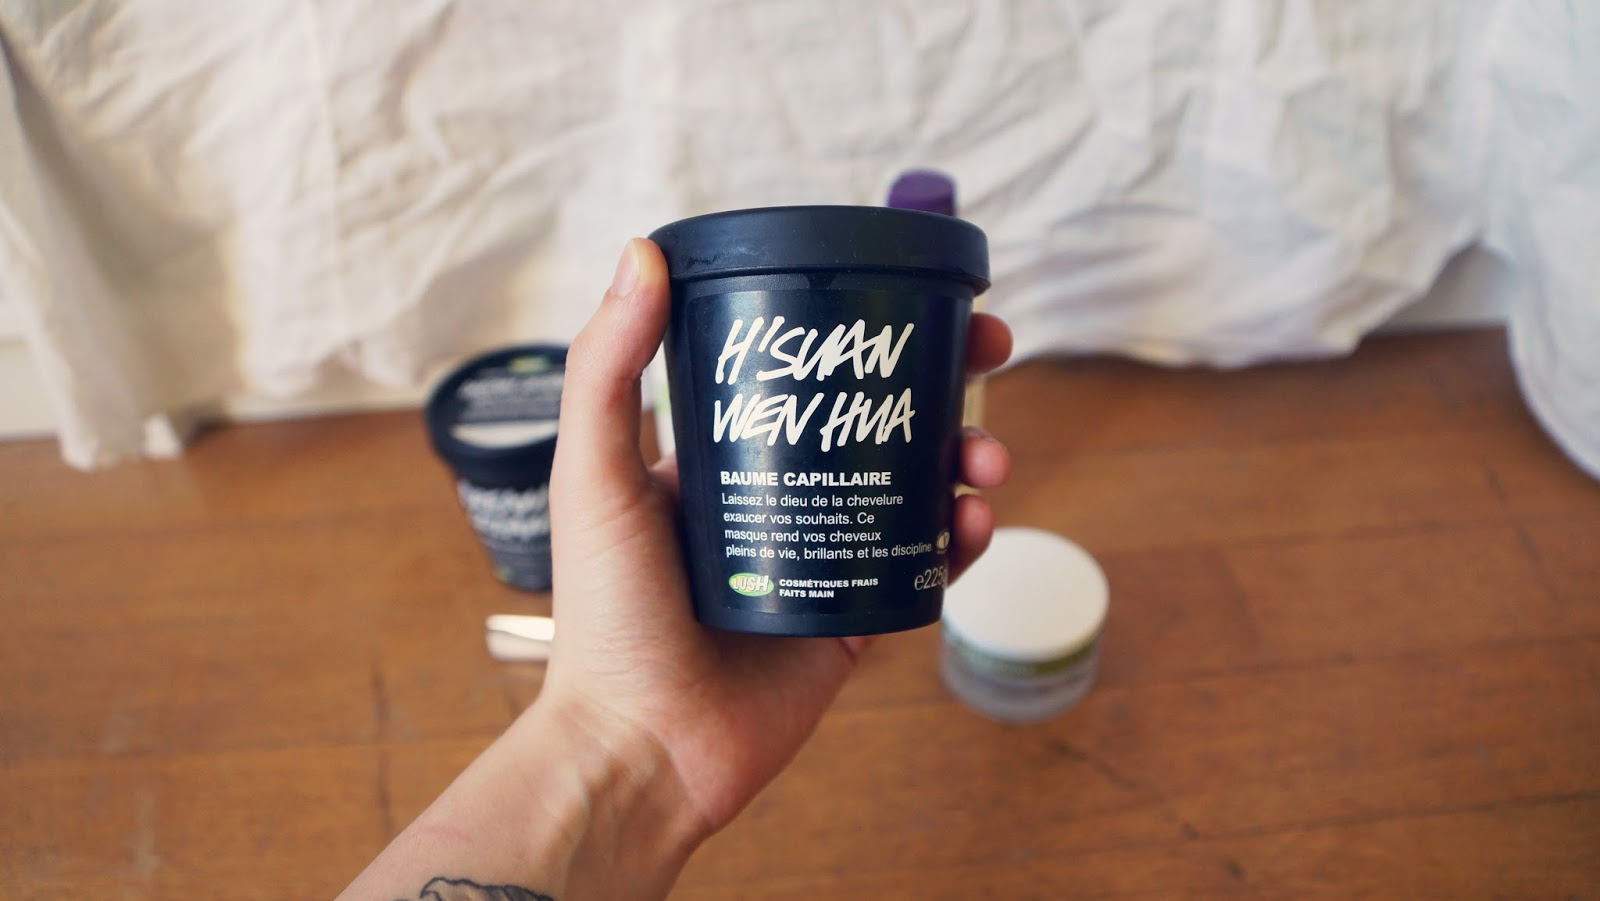 H'Suan Wen Hua Lush Hair Mask Review